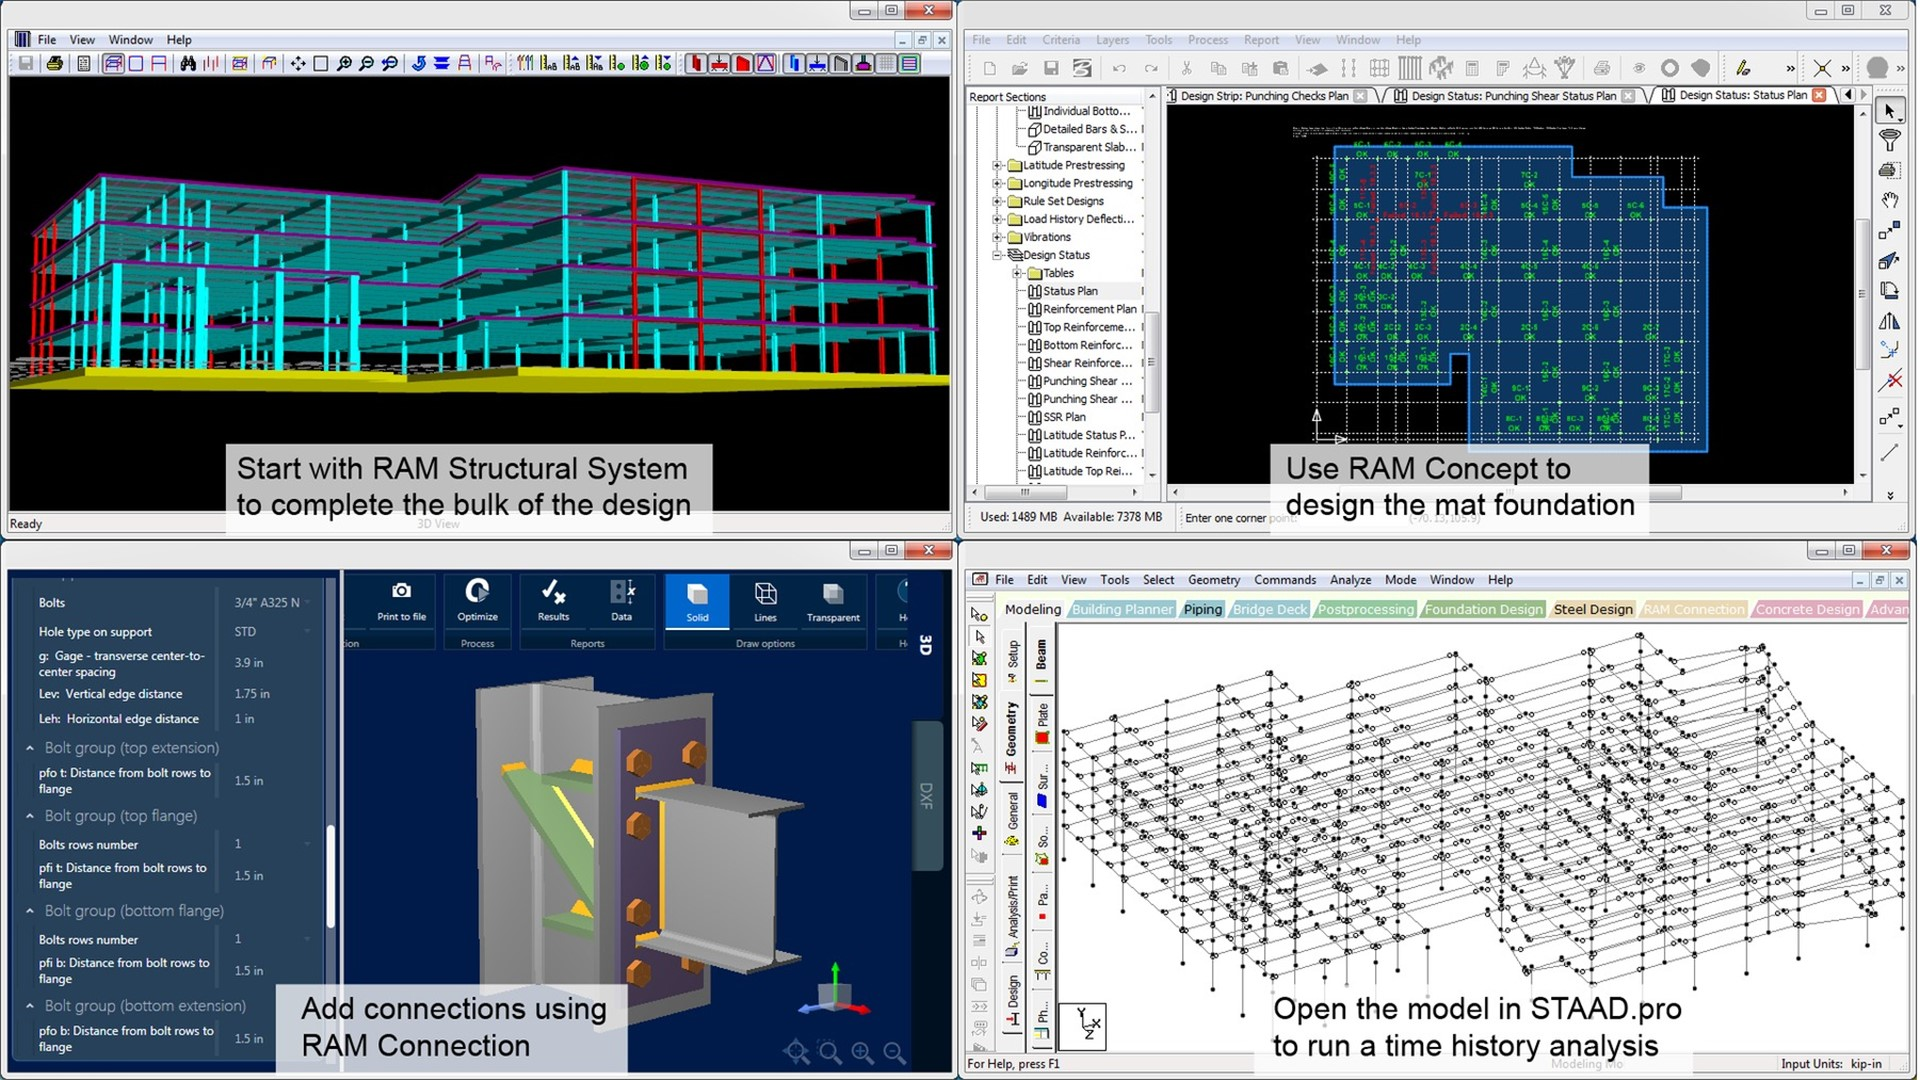 Share structural models_RSTEEL_RAMSS_RCONCEPT_RCONCRETE_RFDN_RFRAME_EDITED